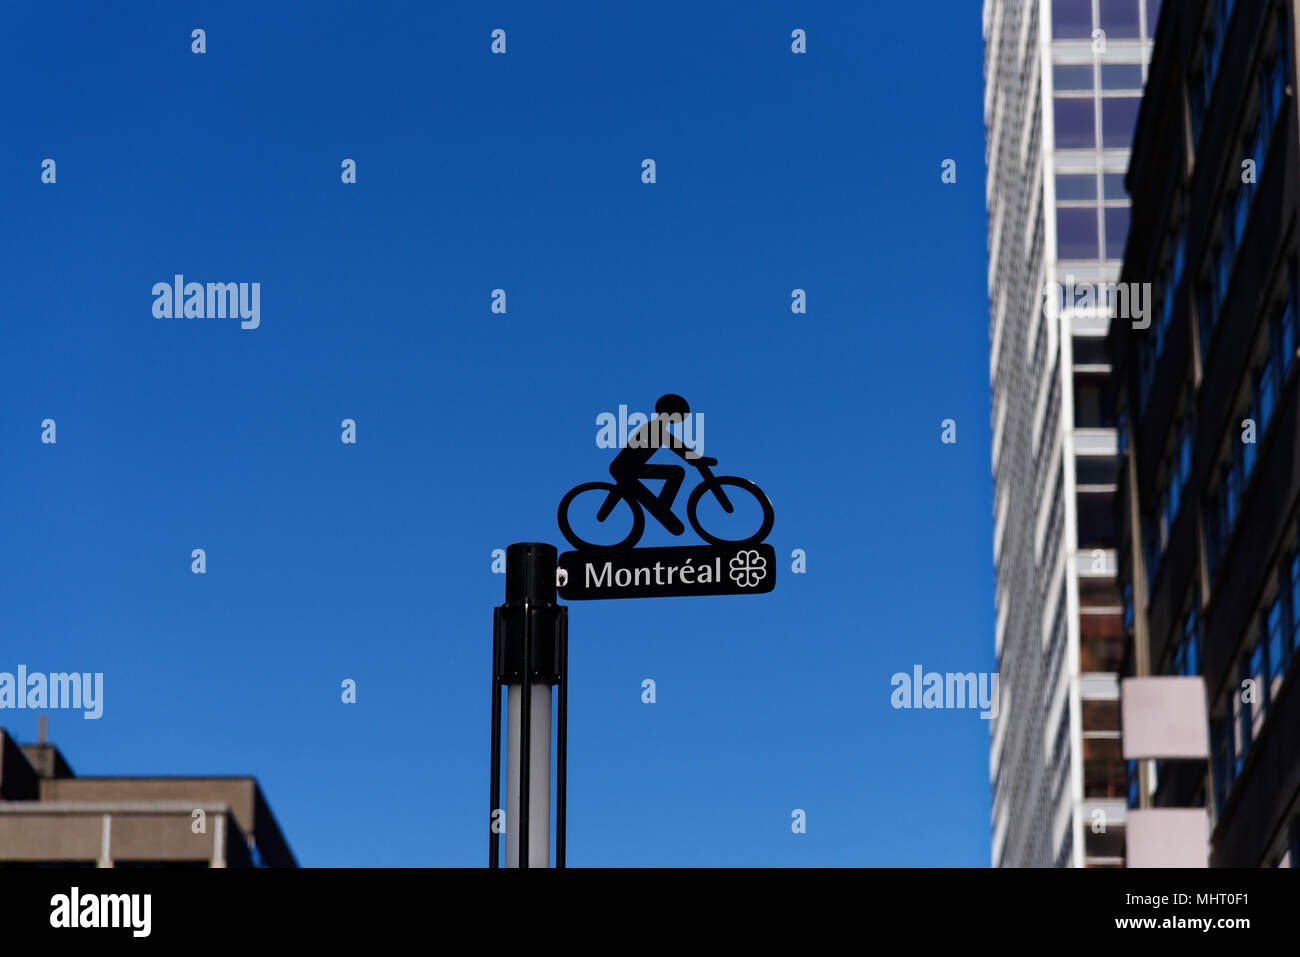 Sign for the Claire Morissette cycle path on Maisonneuve street in downtown Montreal, Quebec, Canada - Stock Image